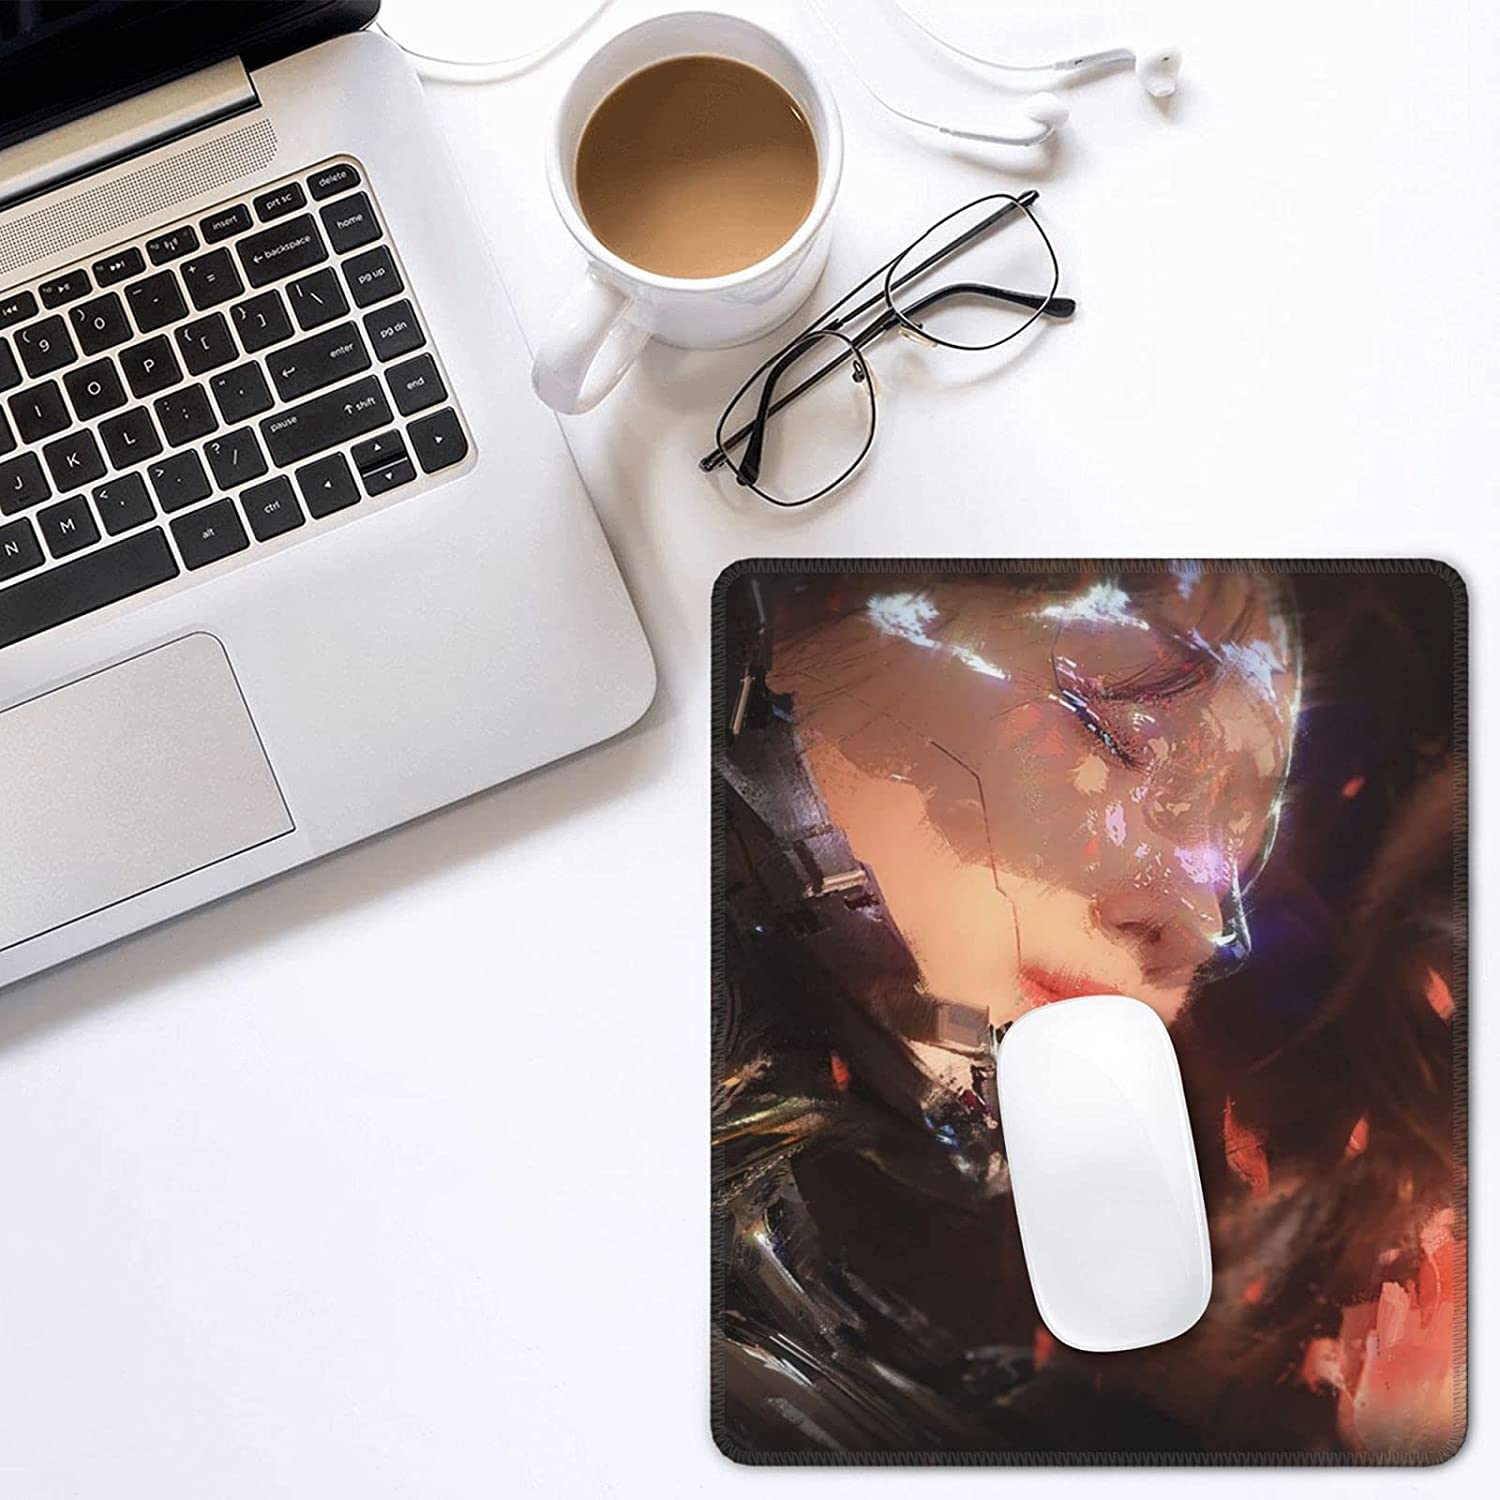 Loarpome Mouse Pad Gaming Directly managed store Regular dealer Mousepad with Edges Non-S Stitched and